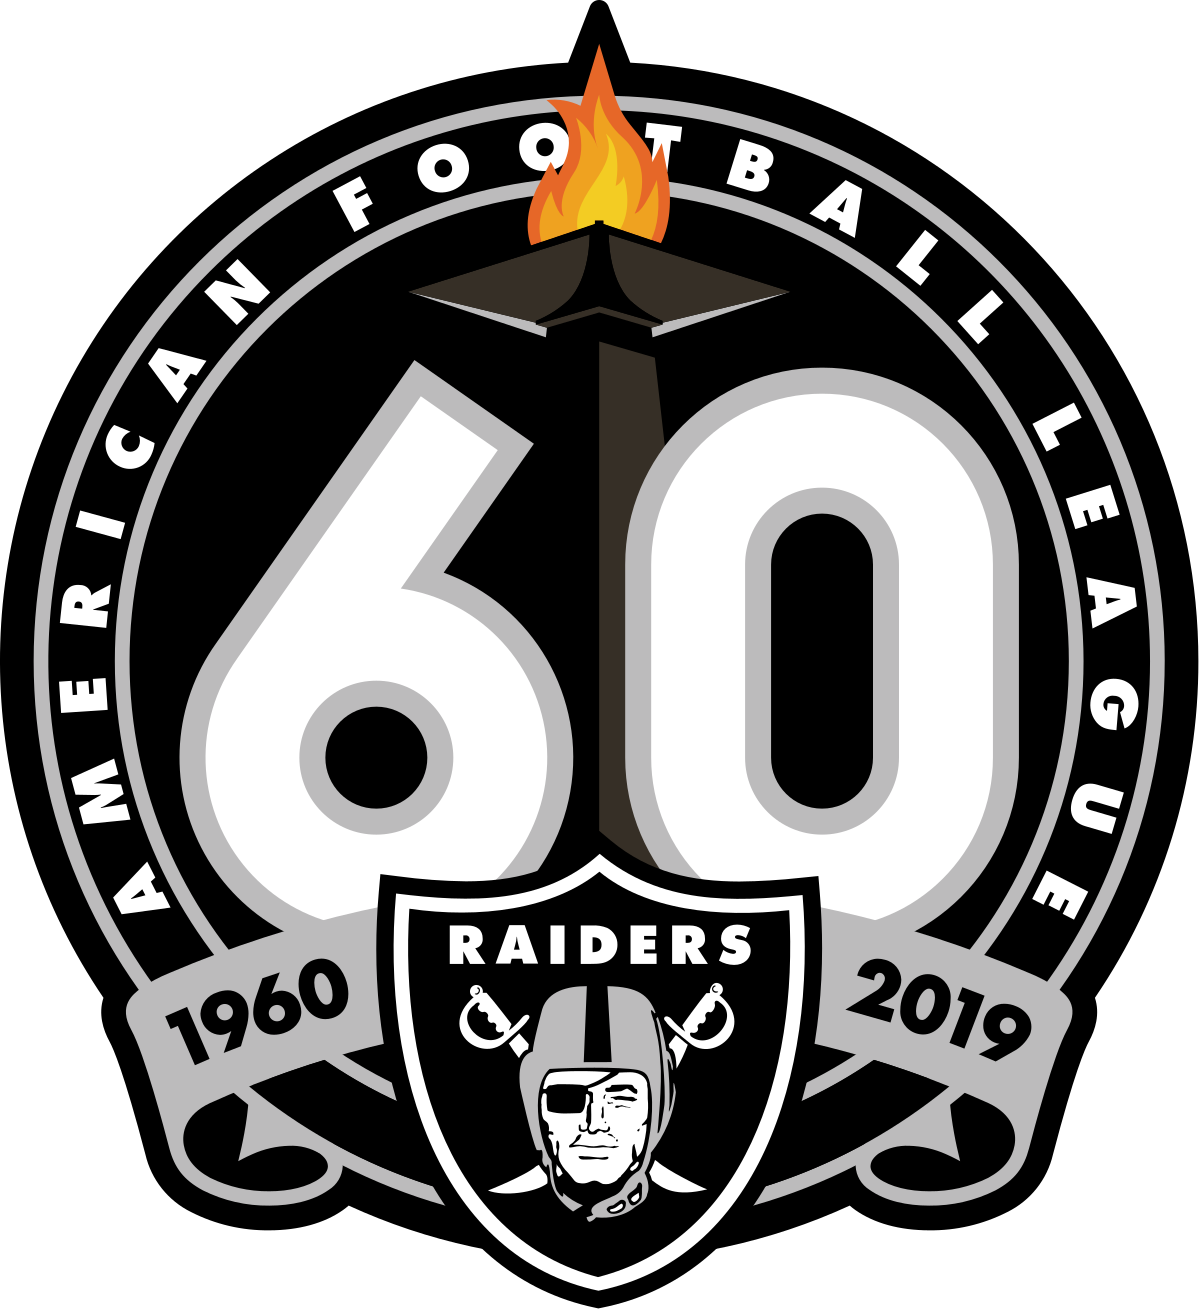 2019 Oakland Raiders season.